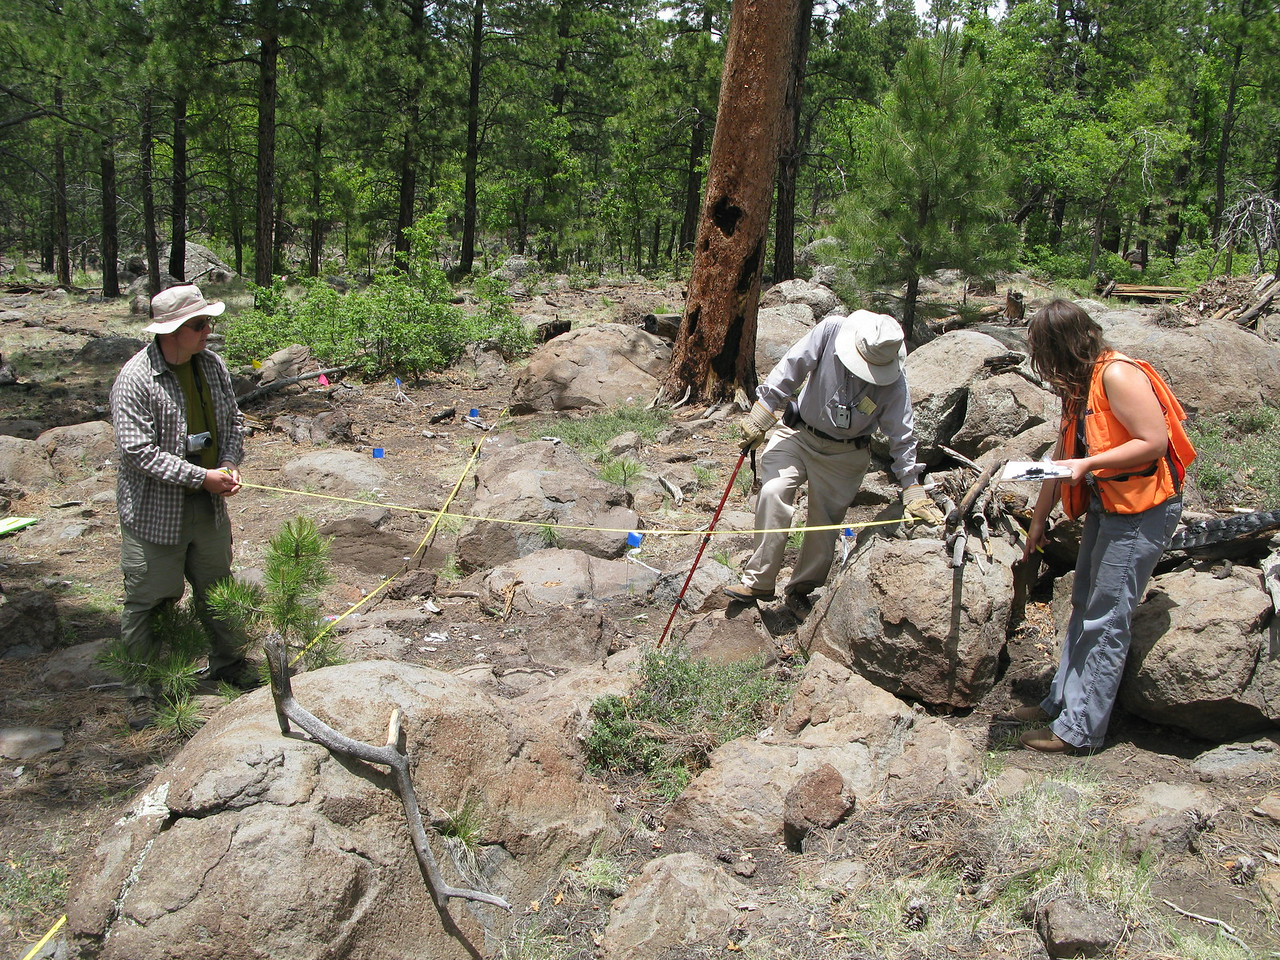 Craig Fuller, Bob Rushforth, and Cristin Embree set up a datum line just prior to the mapping process.